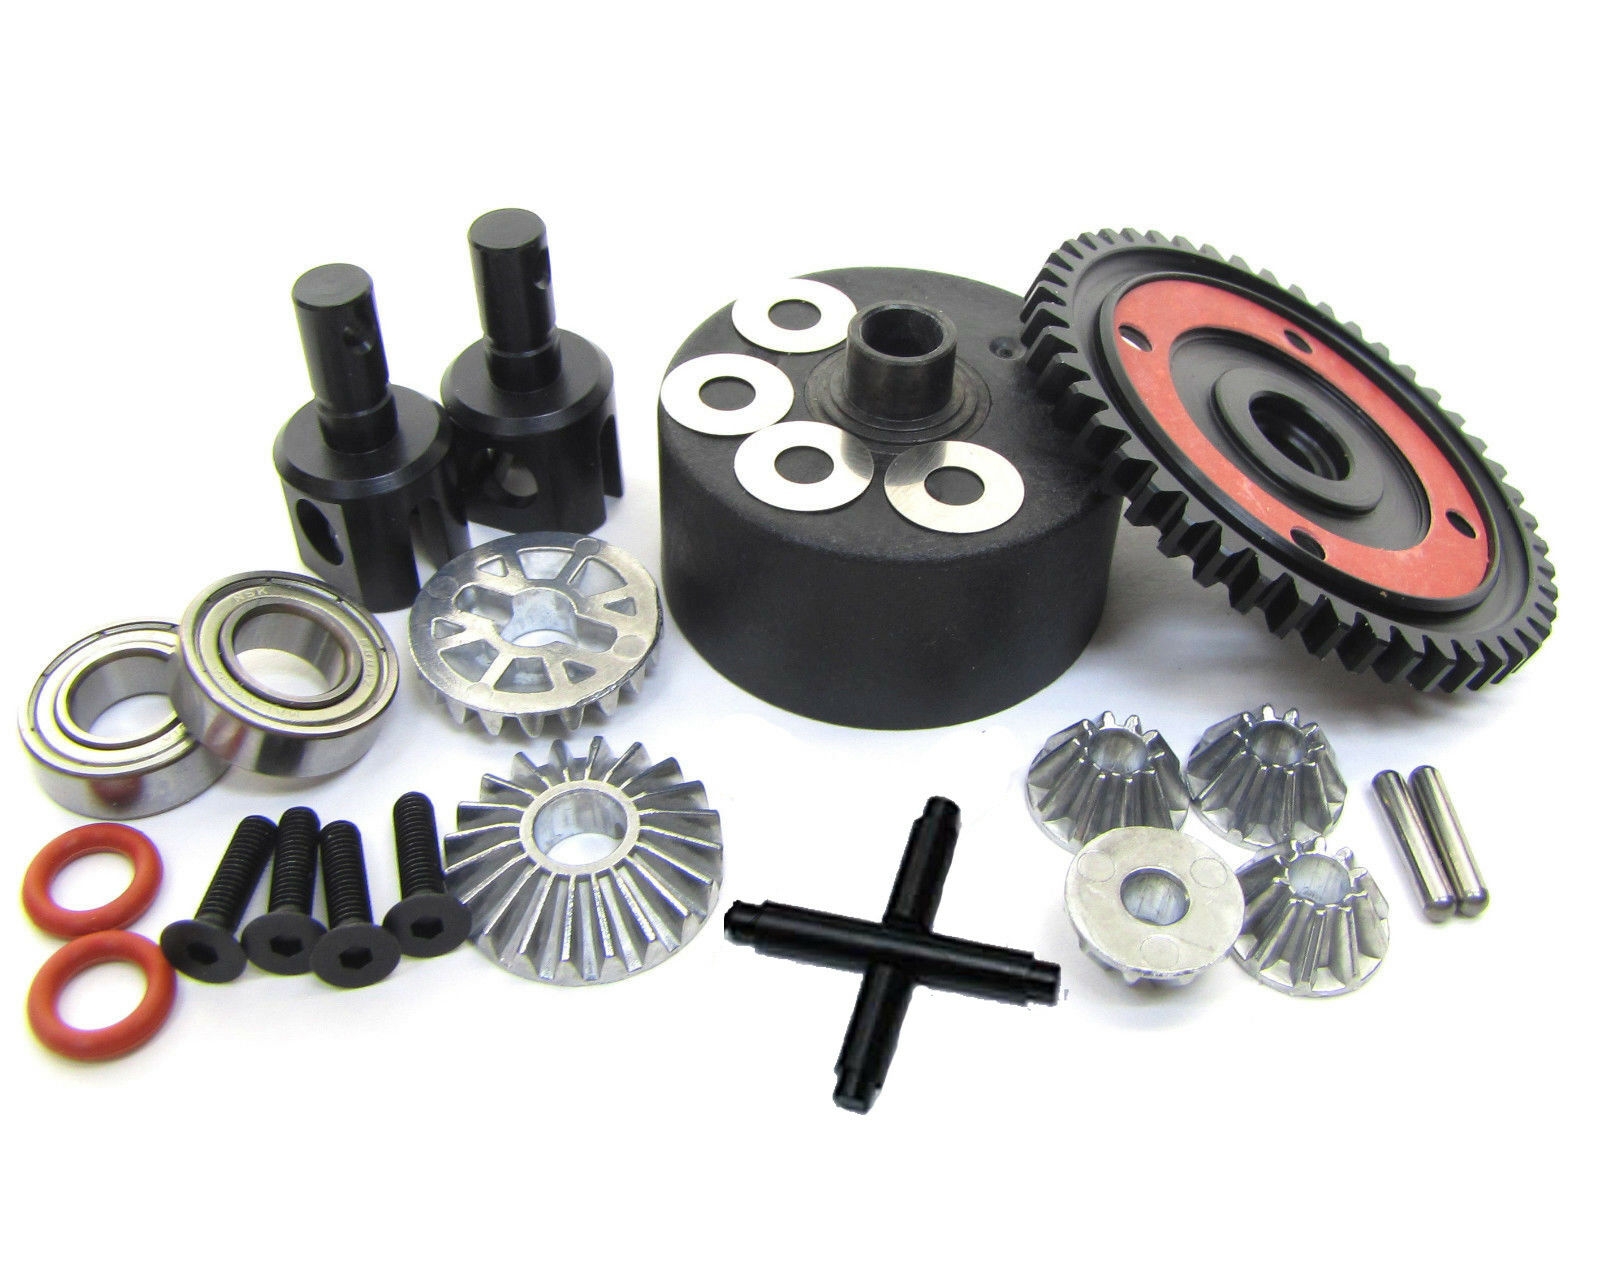 Differenziale Centrale kyosho MP9 MP10 - IF410-47 IF410-47 IF410-47 IF402 IF413 IF404B IF411  artículos novedosos